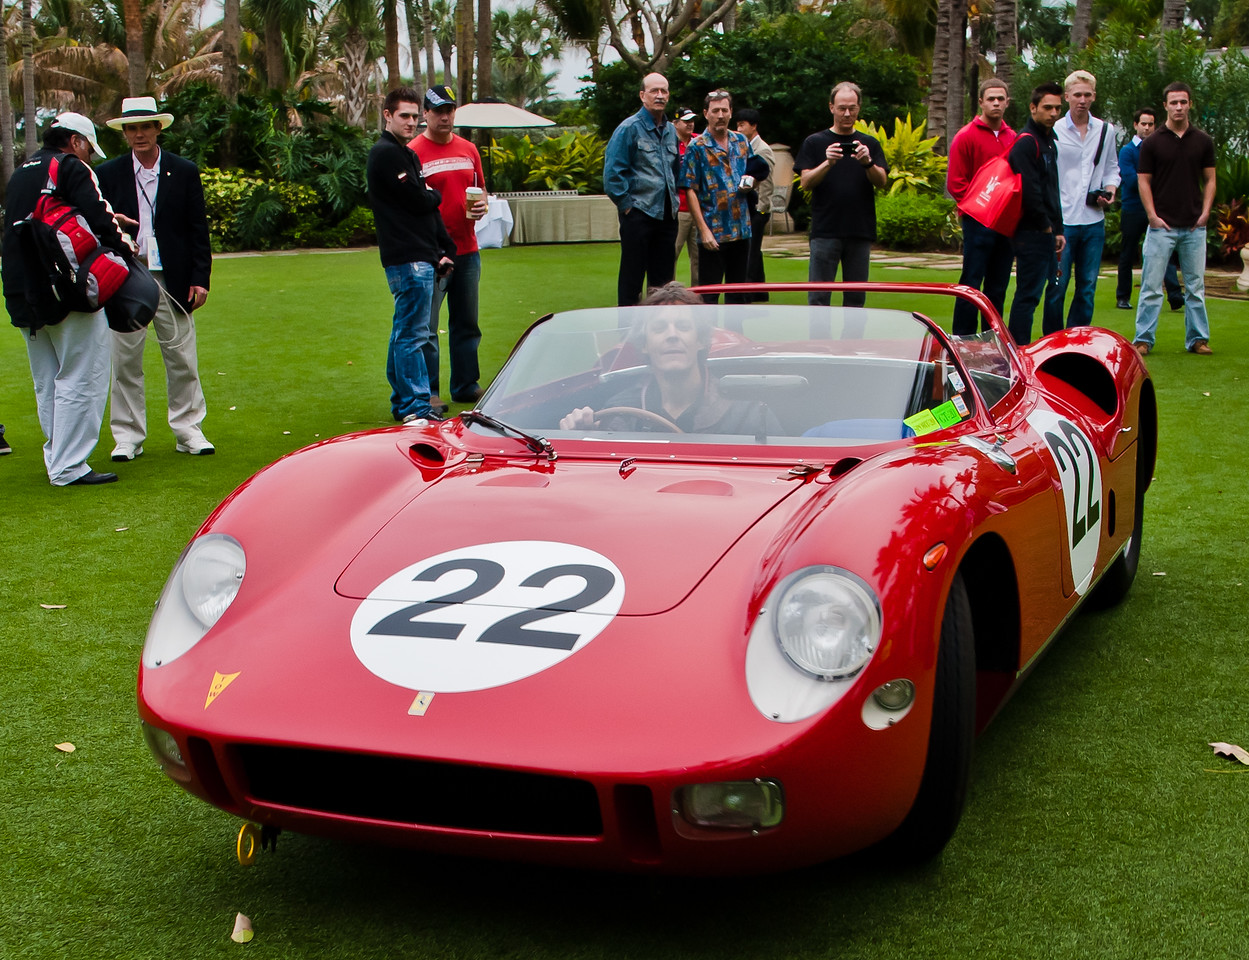 1964 Ferrari 275P/0812 Sebring Winning Car